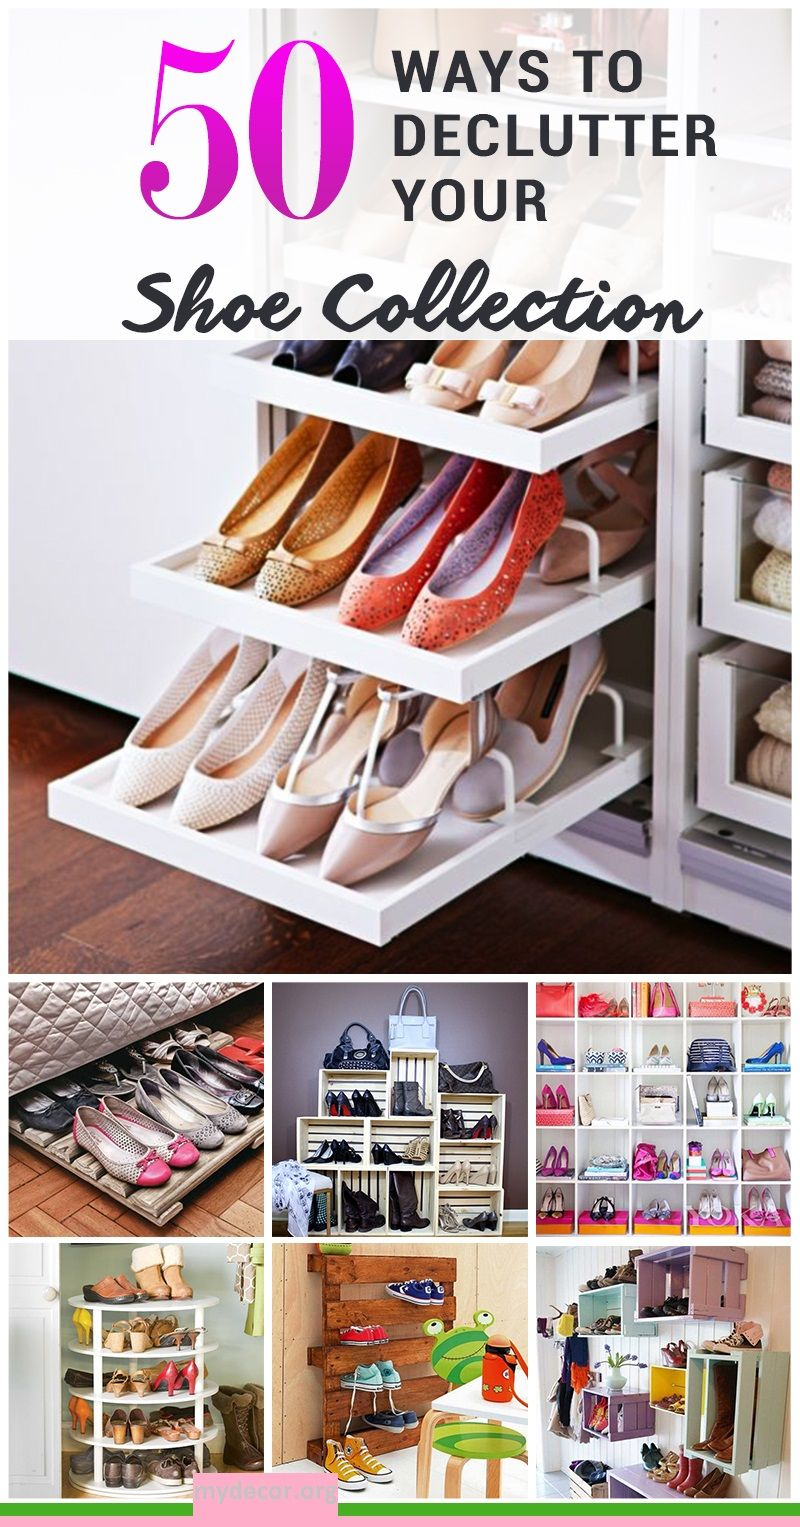 It Is Undoubtedly Important For All Of Your Shoes To Be Organized Not Only Does Keeping Them In One Central Location Keep Your House Or Apartment Clean And